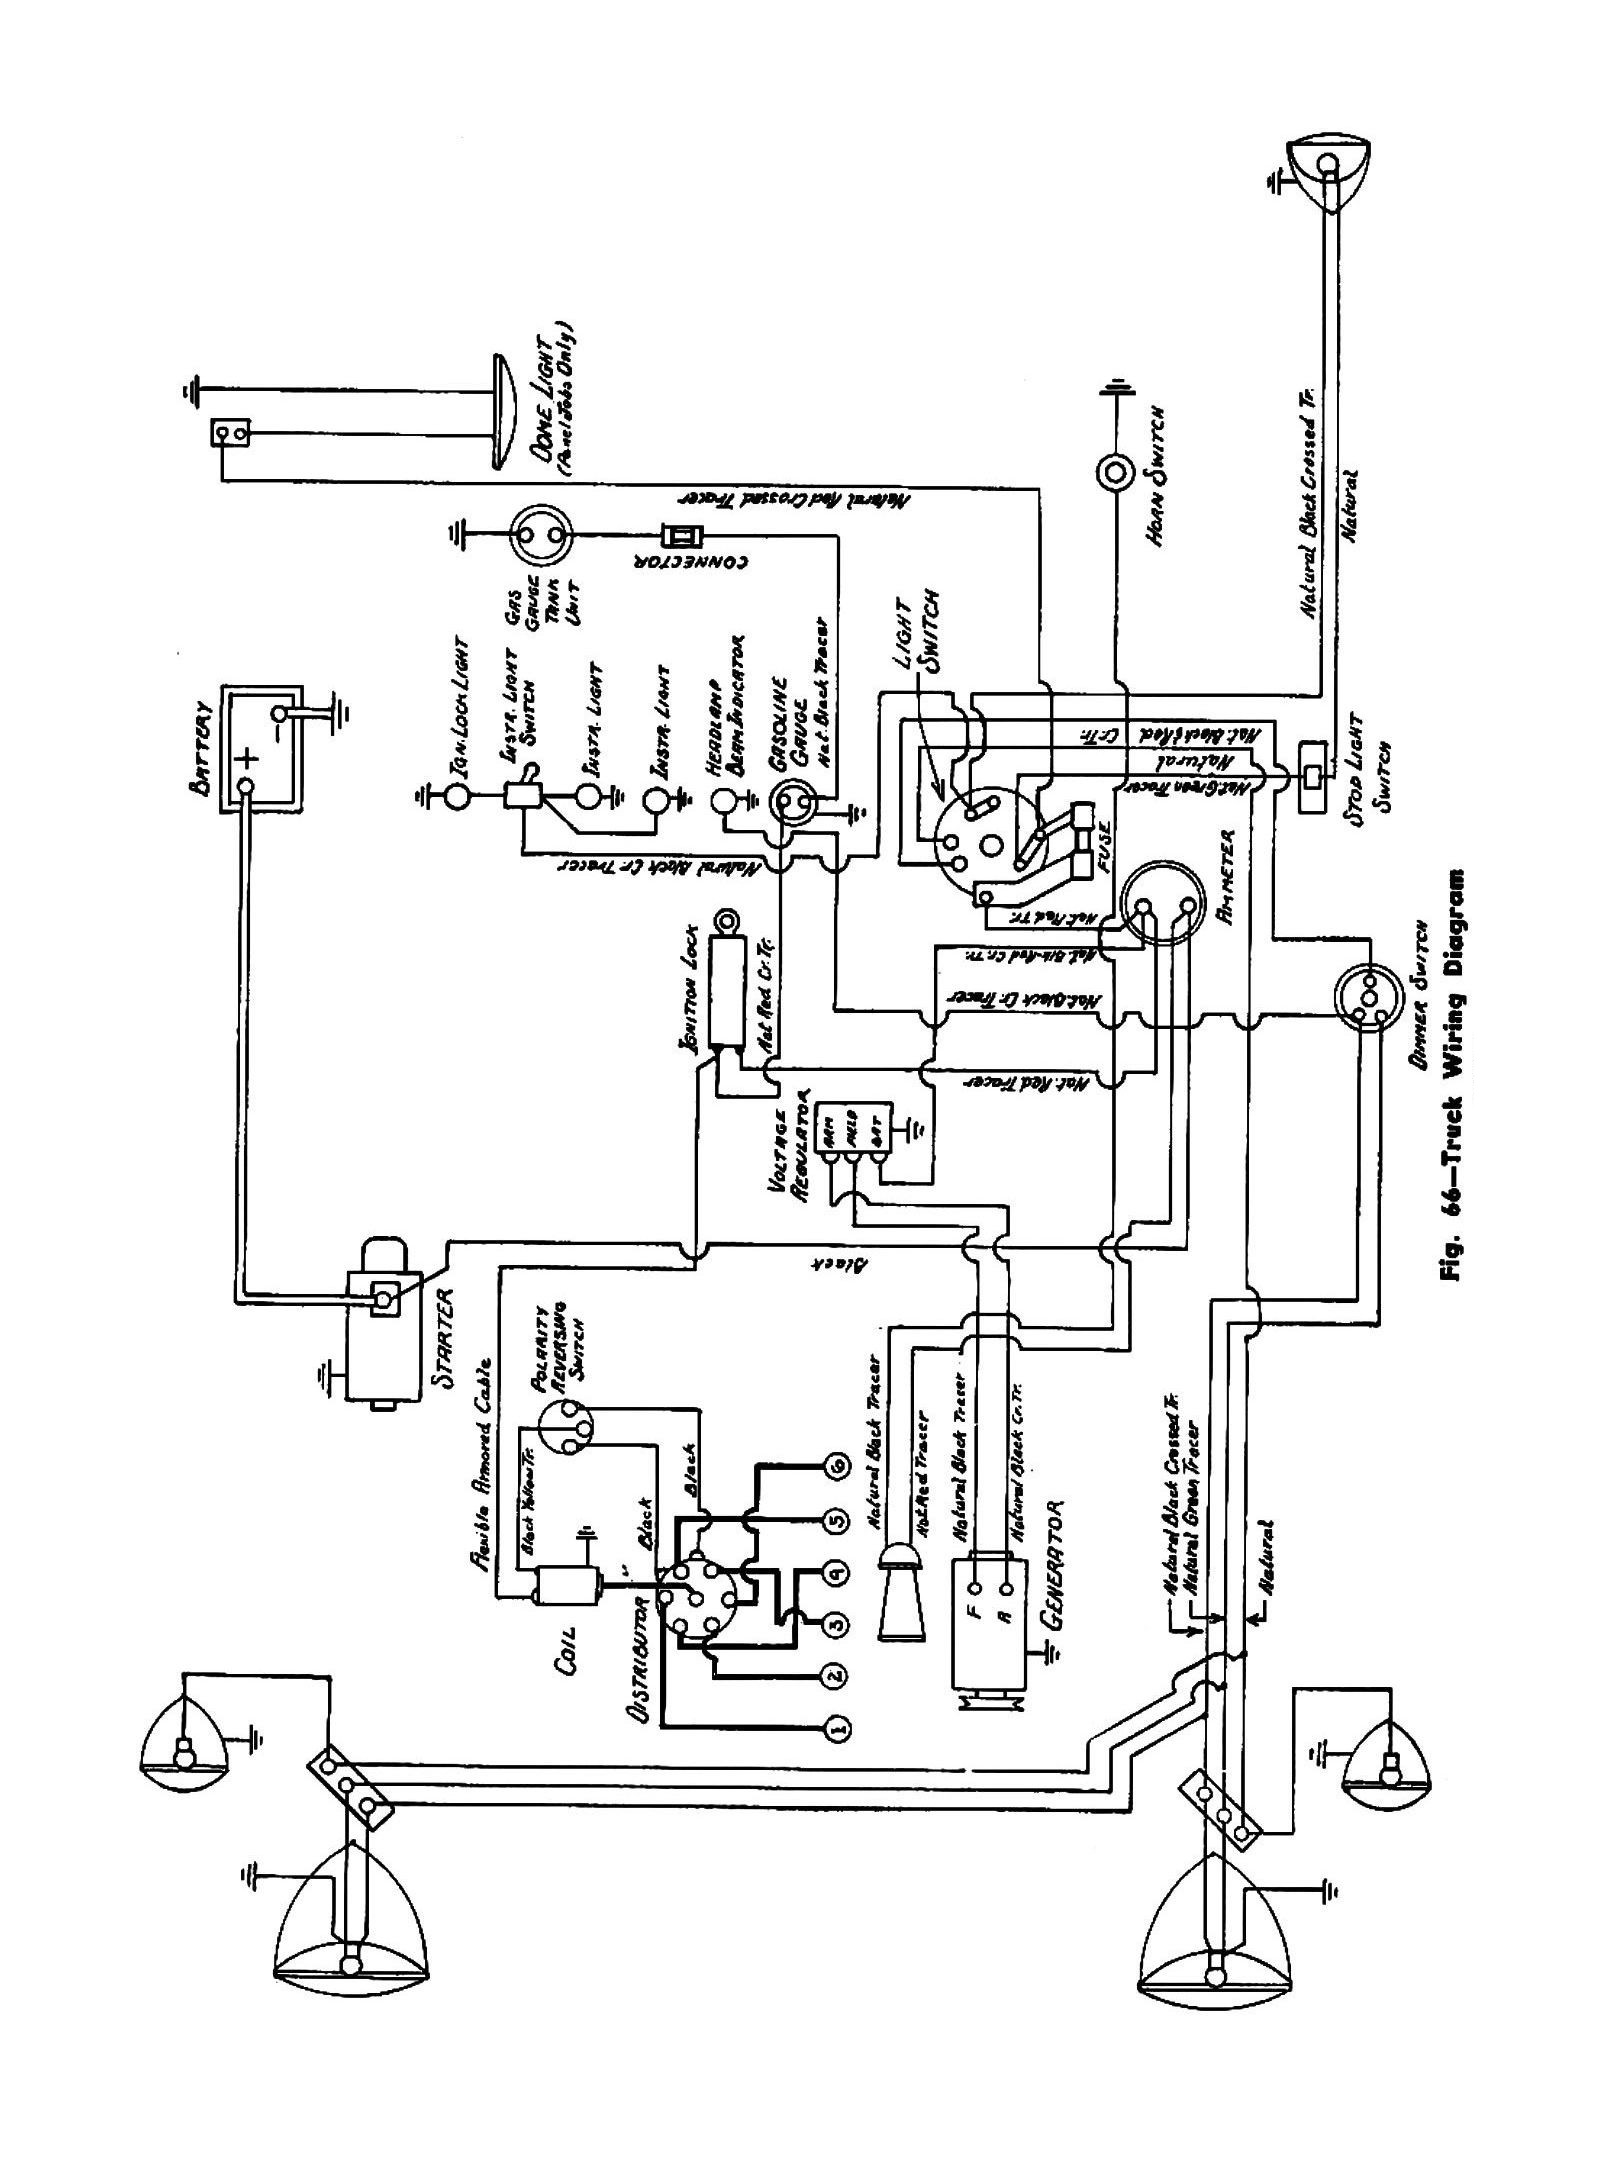 olds wiring diagram 1953 oldsmobile wiring diagram 1953 wiring diagrams